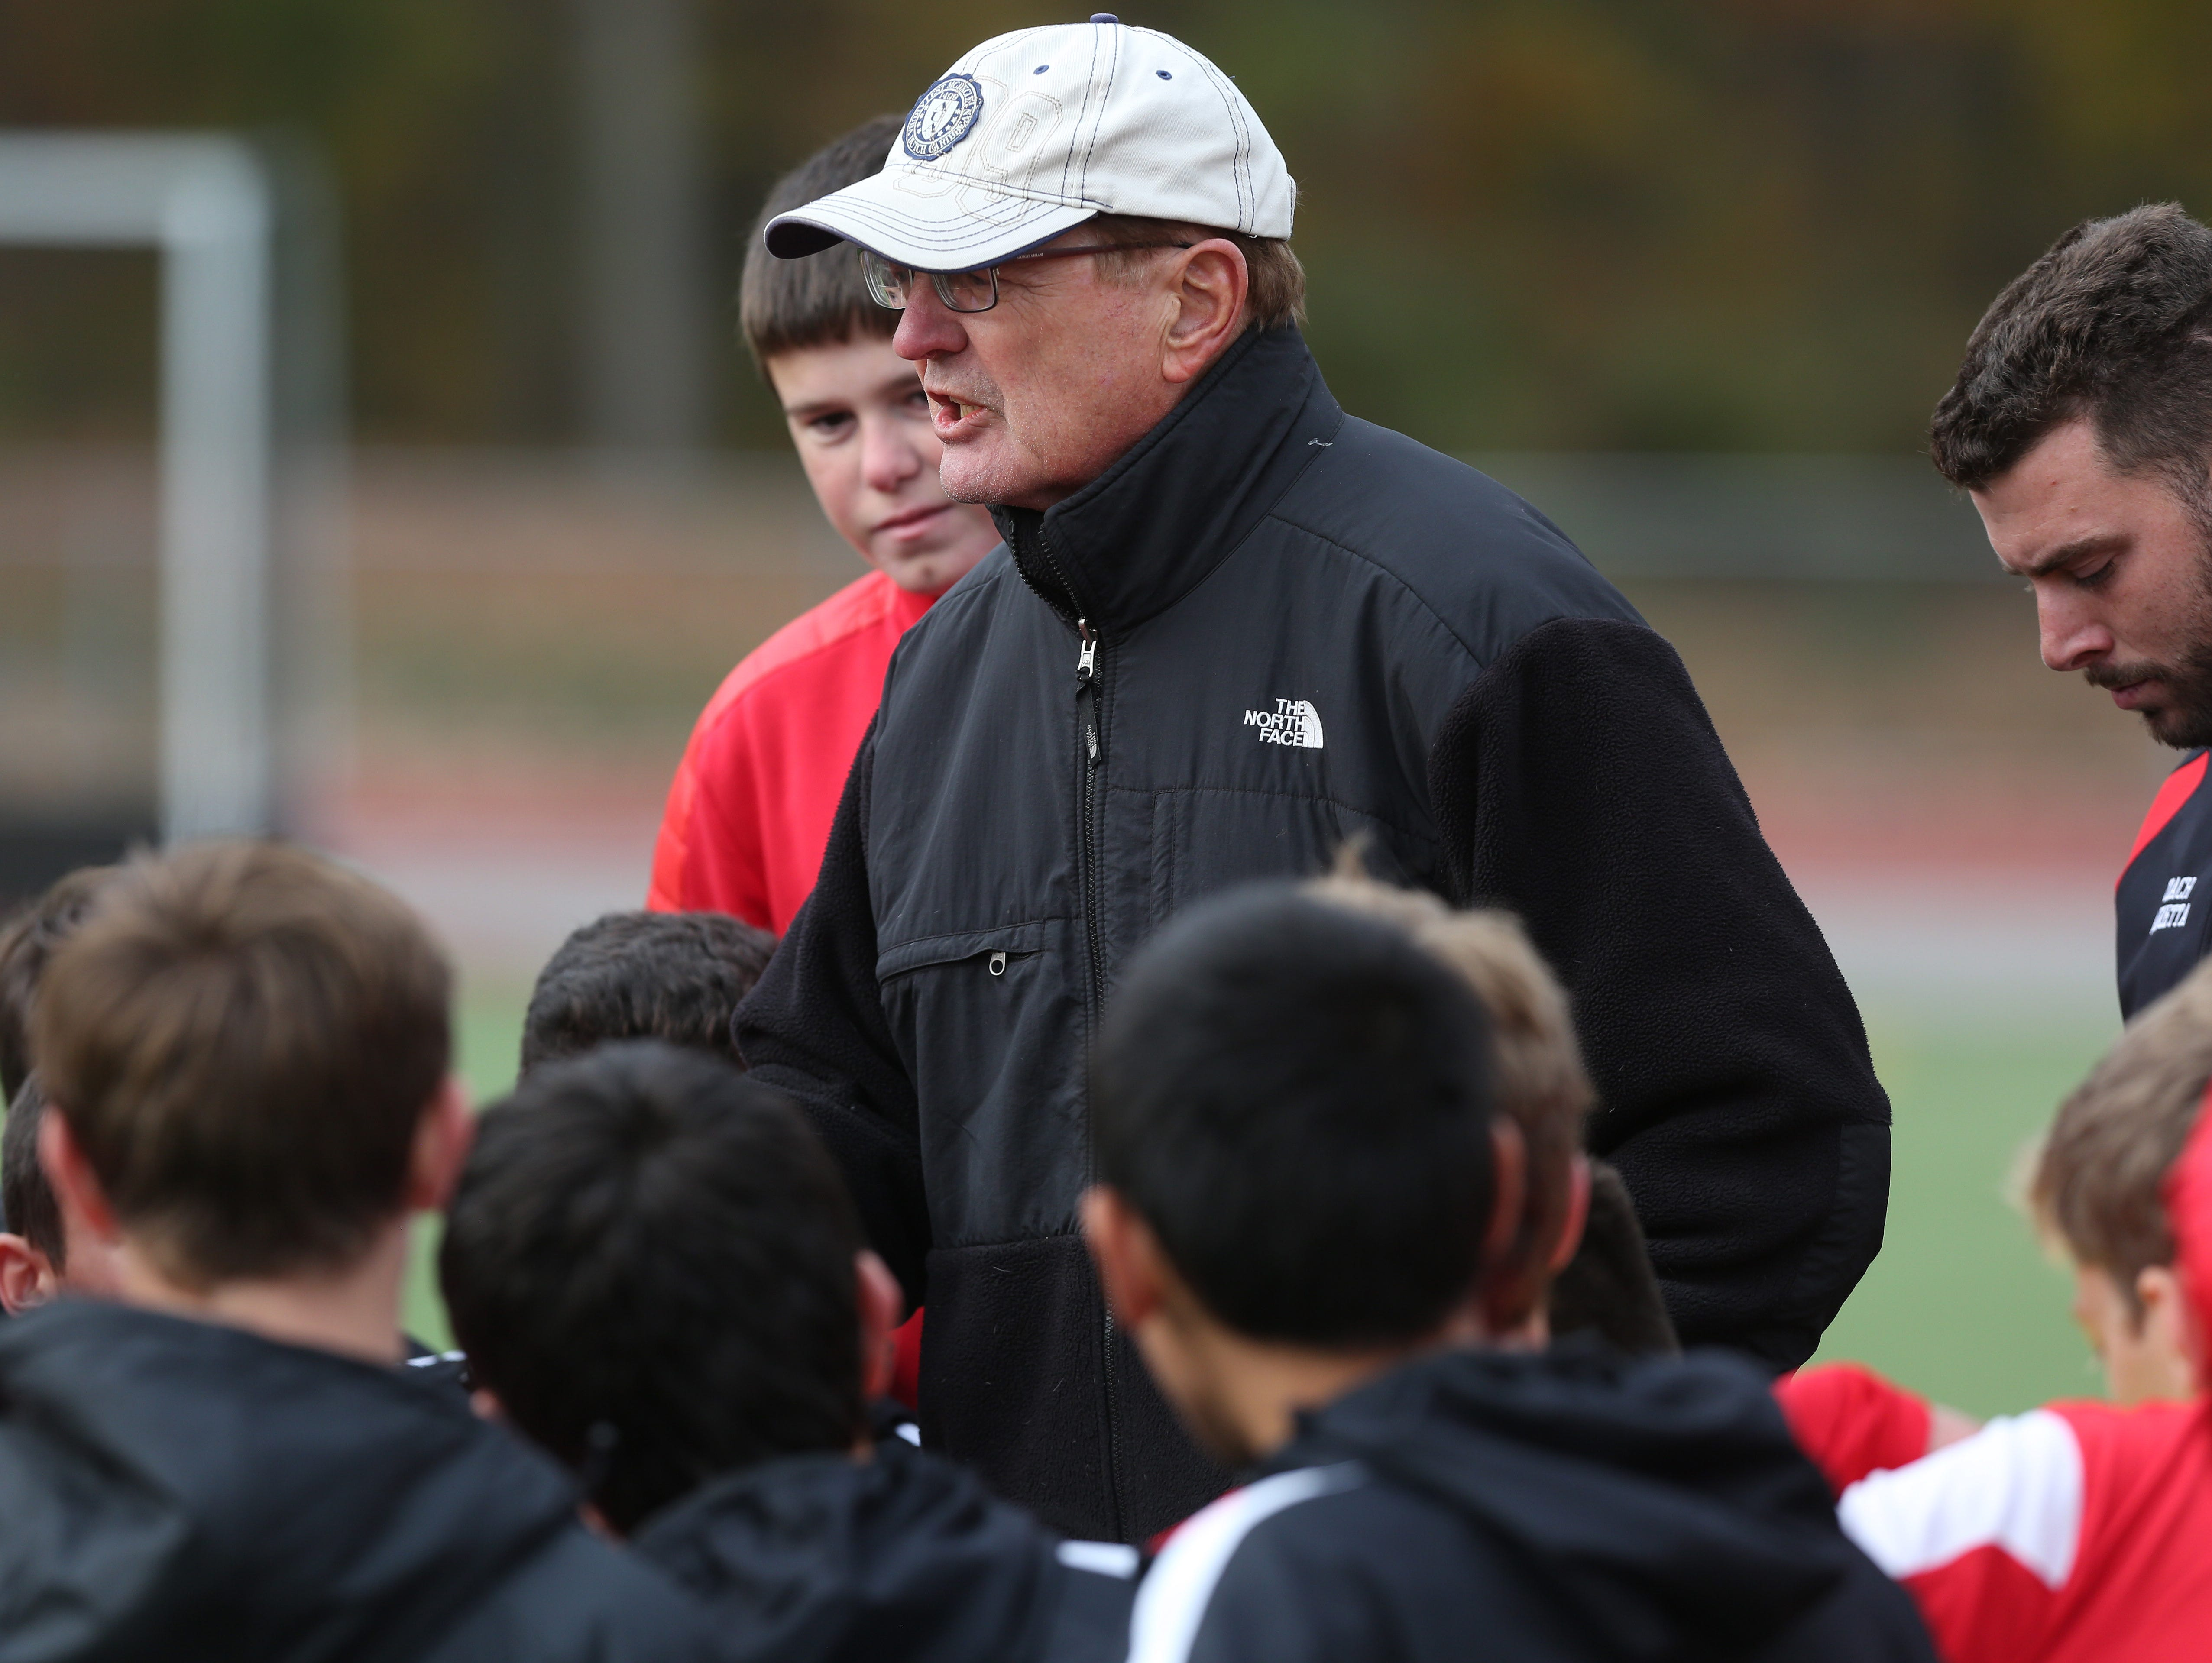 Somers defeated Pearl River 1-0 in the boys soccer Section 1 Class A championship game at Lakeland High School in Shrub Oak High School Oct. 29, 2016.